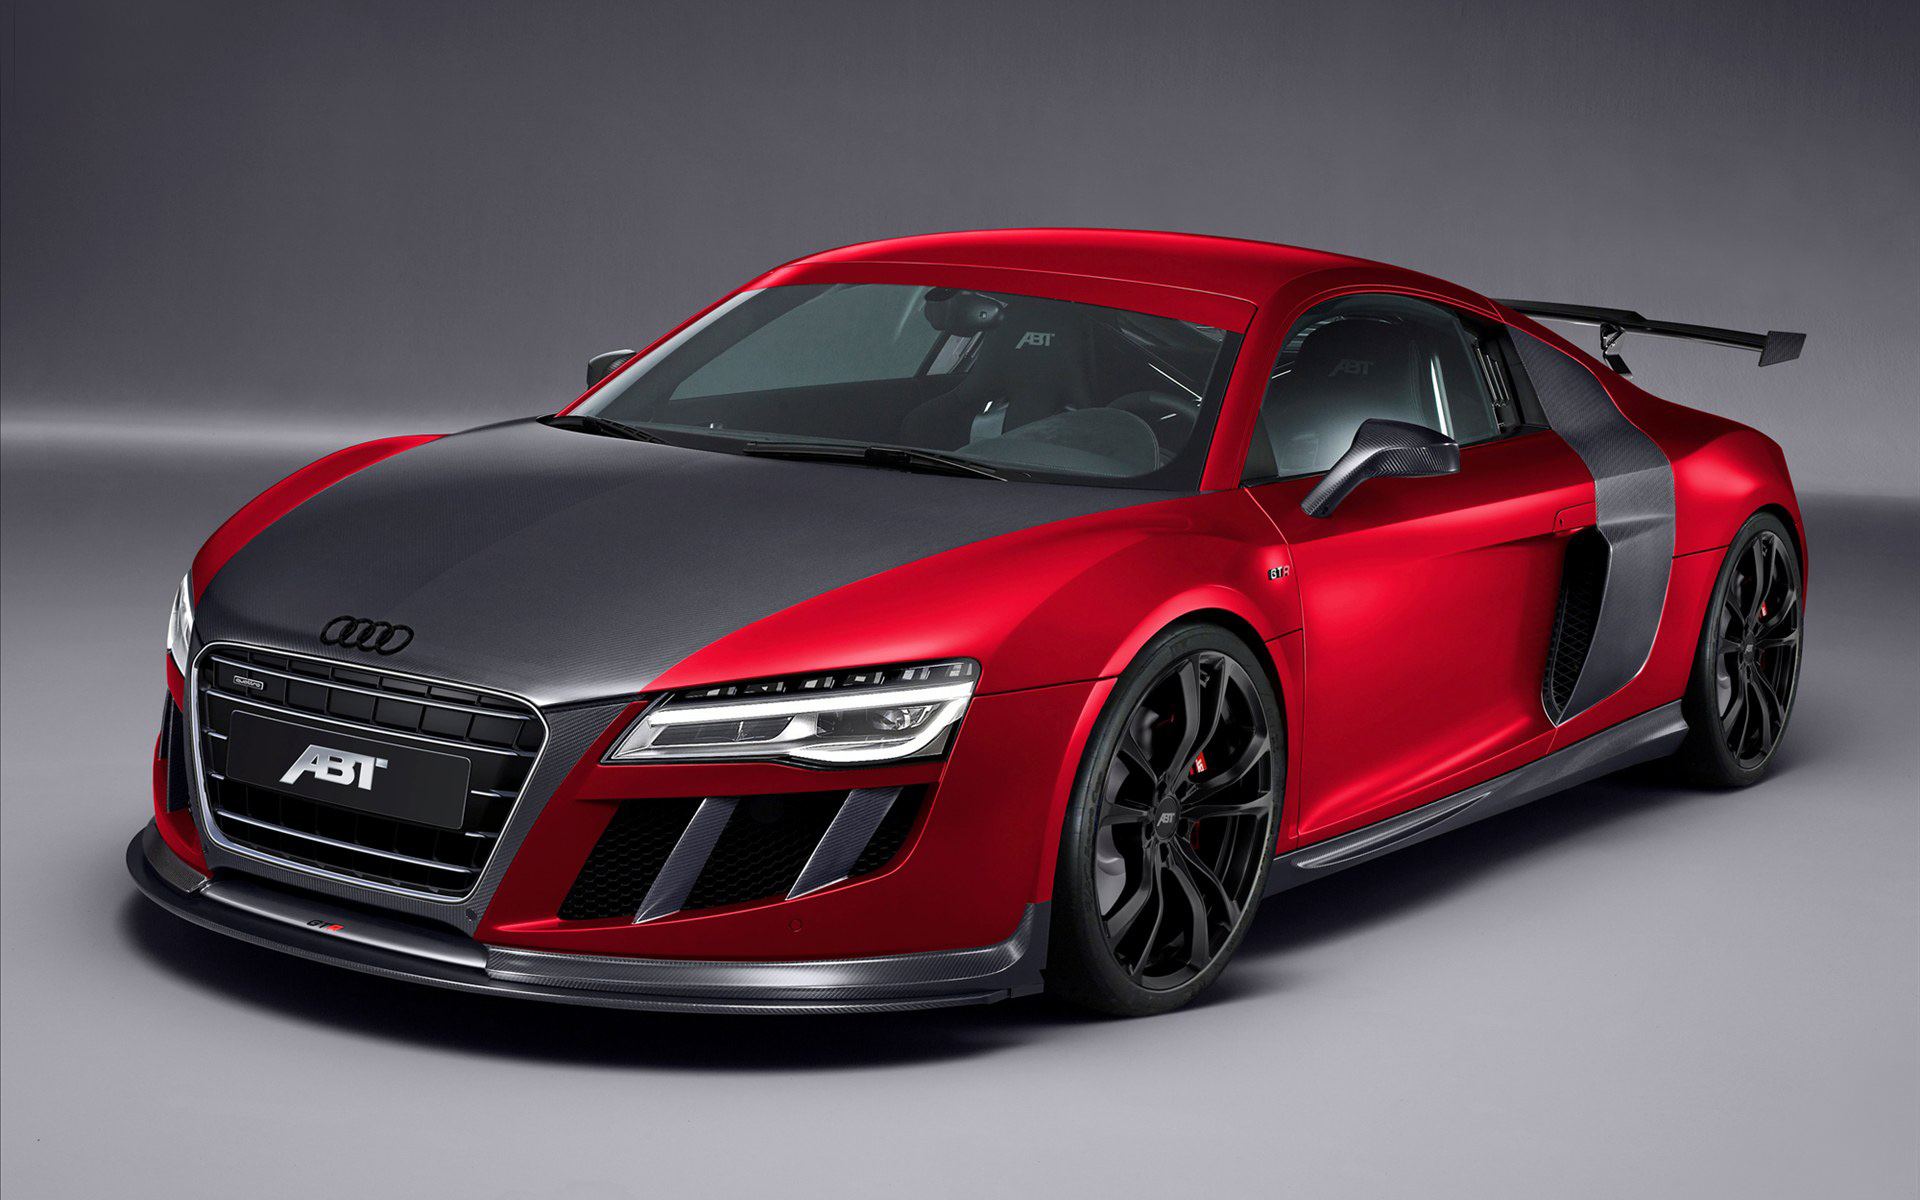 2013 ABT Audi R8 GTR Wallpaper | HD Car Wallpapers | ID #3306 Cool Audi R Wallpapers on ford gt cool wallpapers, audi r8 cool cars, mclaren p1 cool wallpapers, saleen s7 cool wallpapers, ford mustang cool wallpapers,